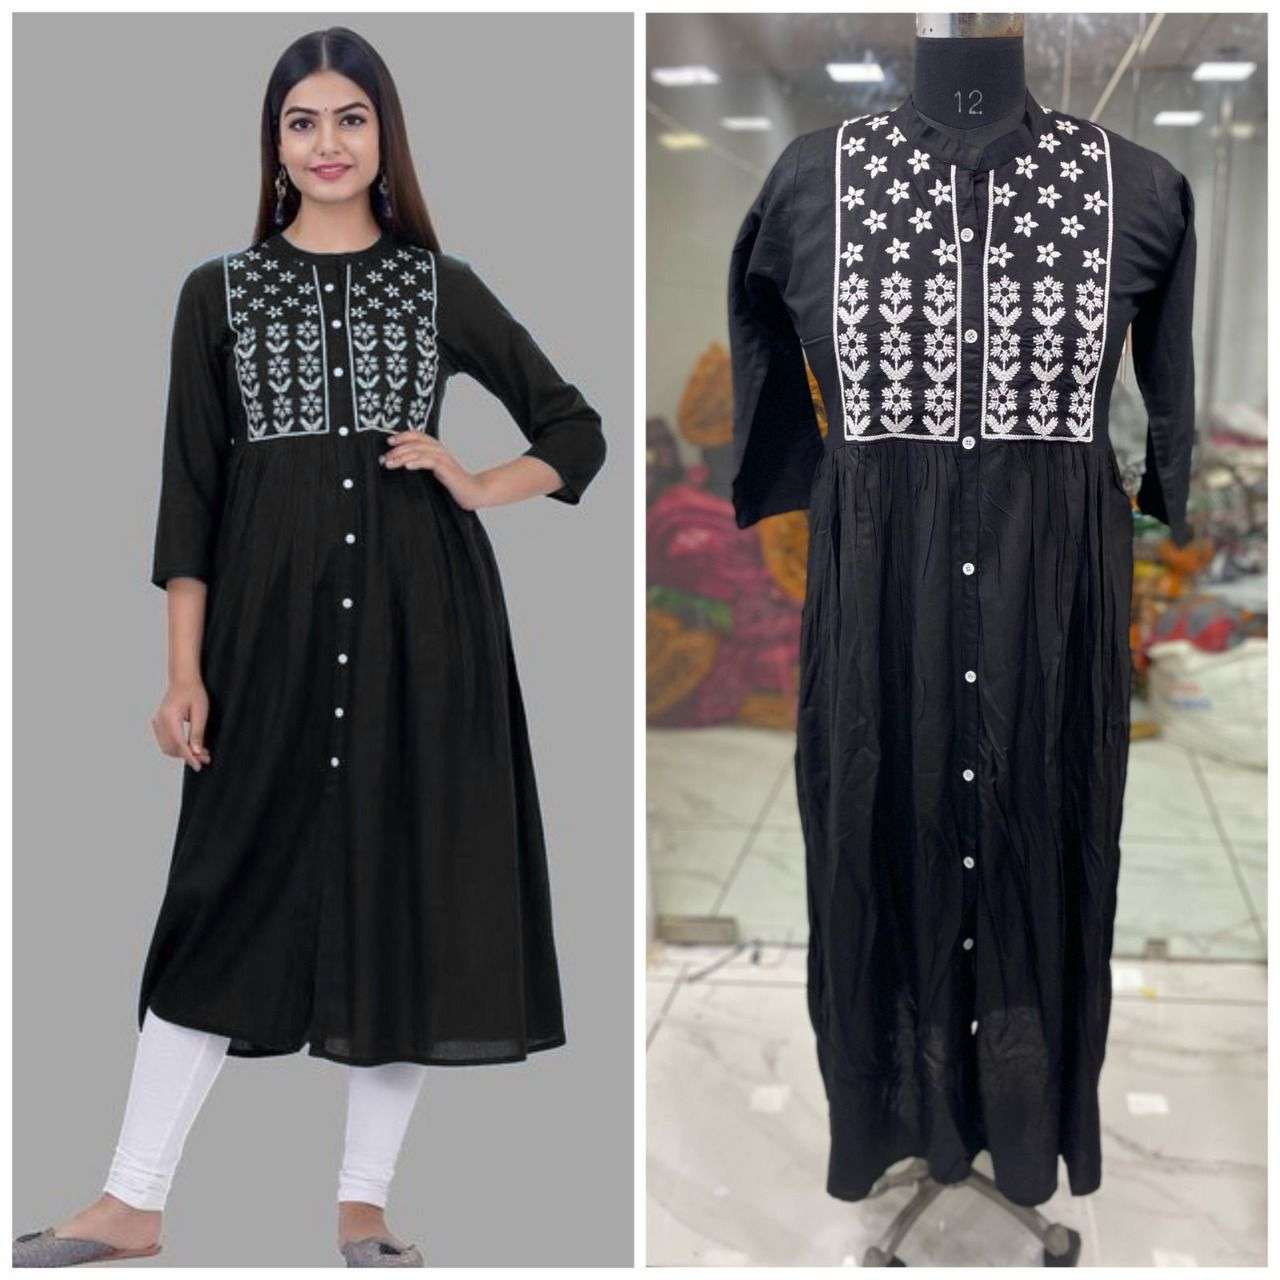 8 BUTTON KURTI RAYON COTTON WITH EMBROIDERY WORK KURTI COLLECTION